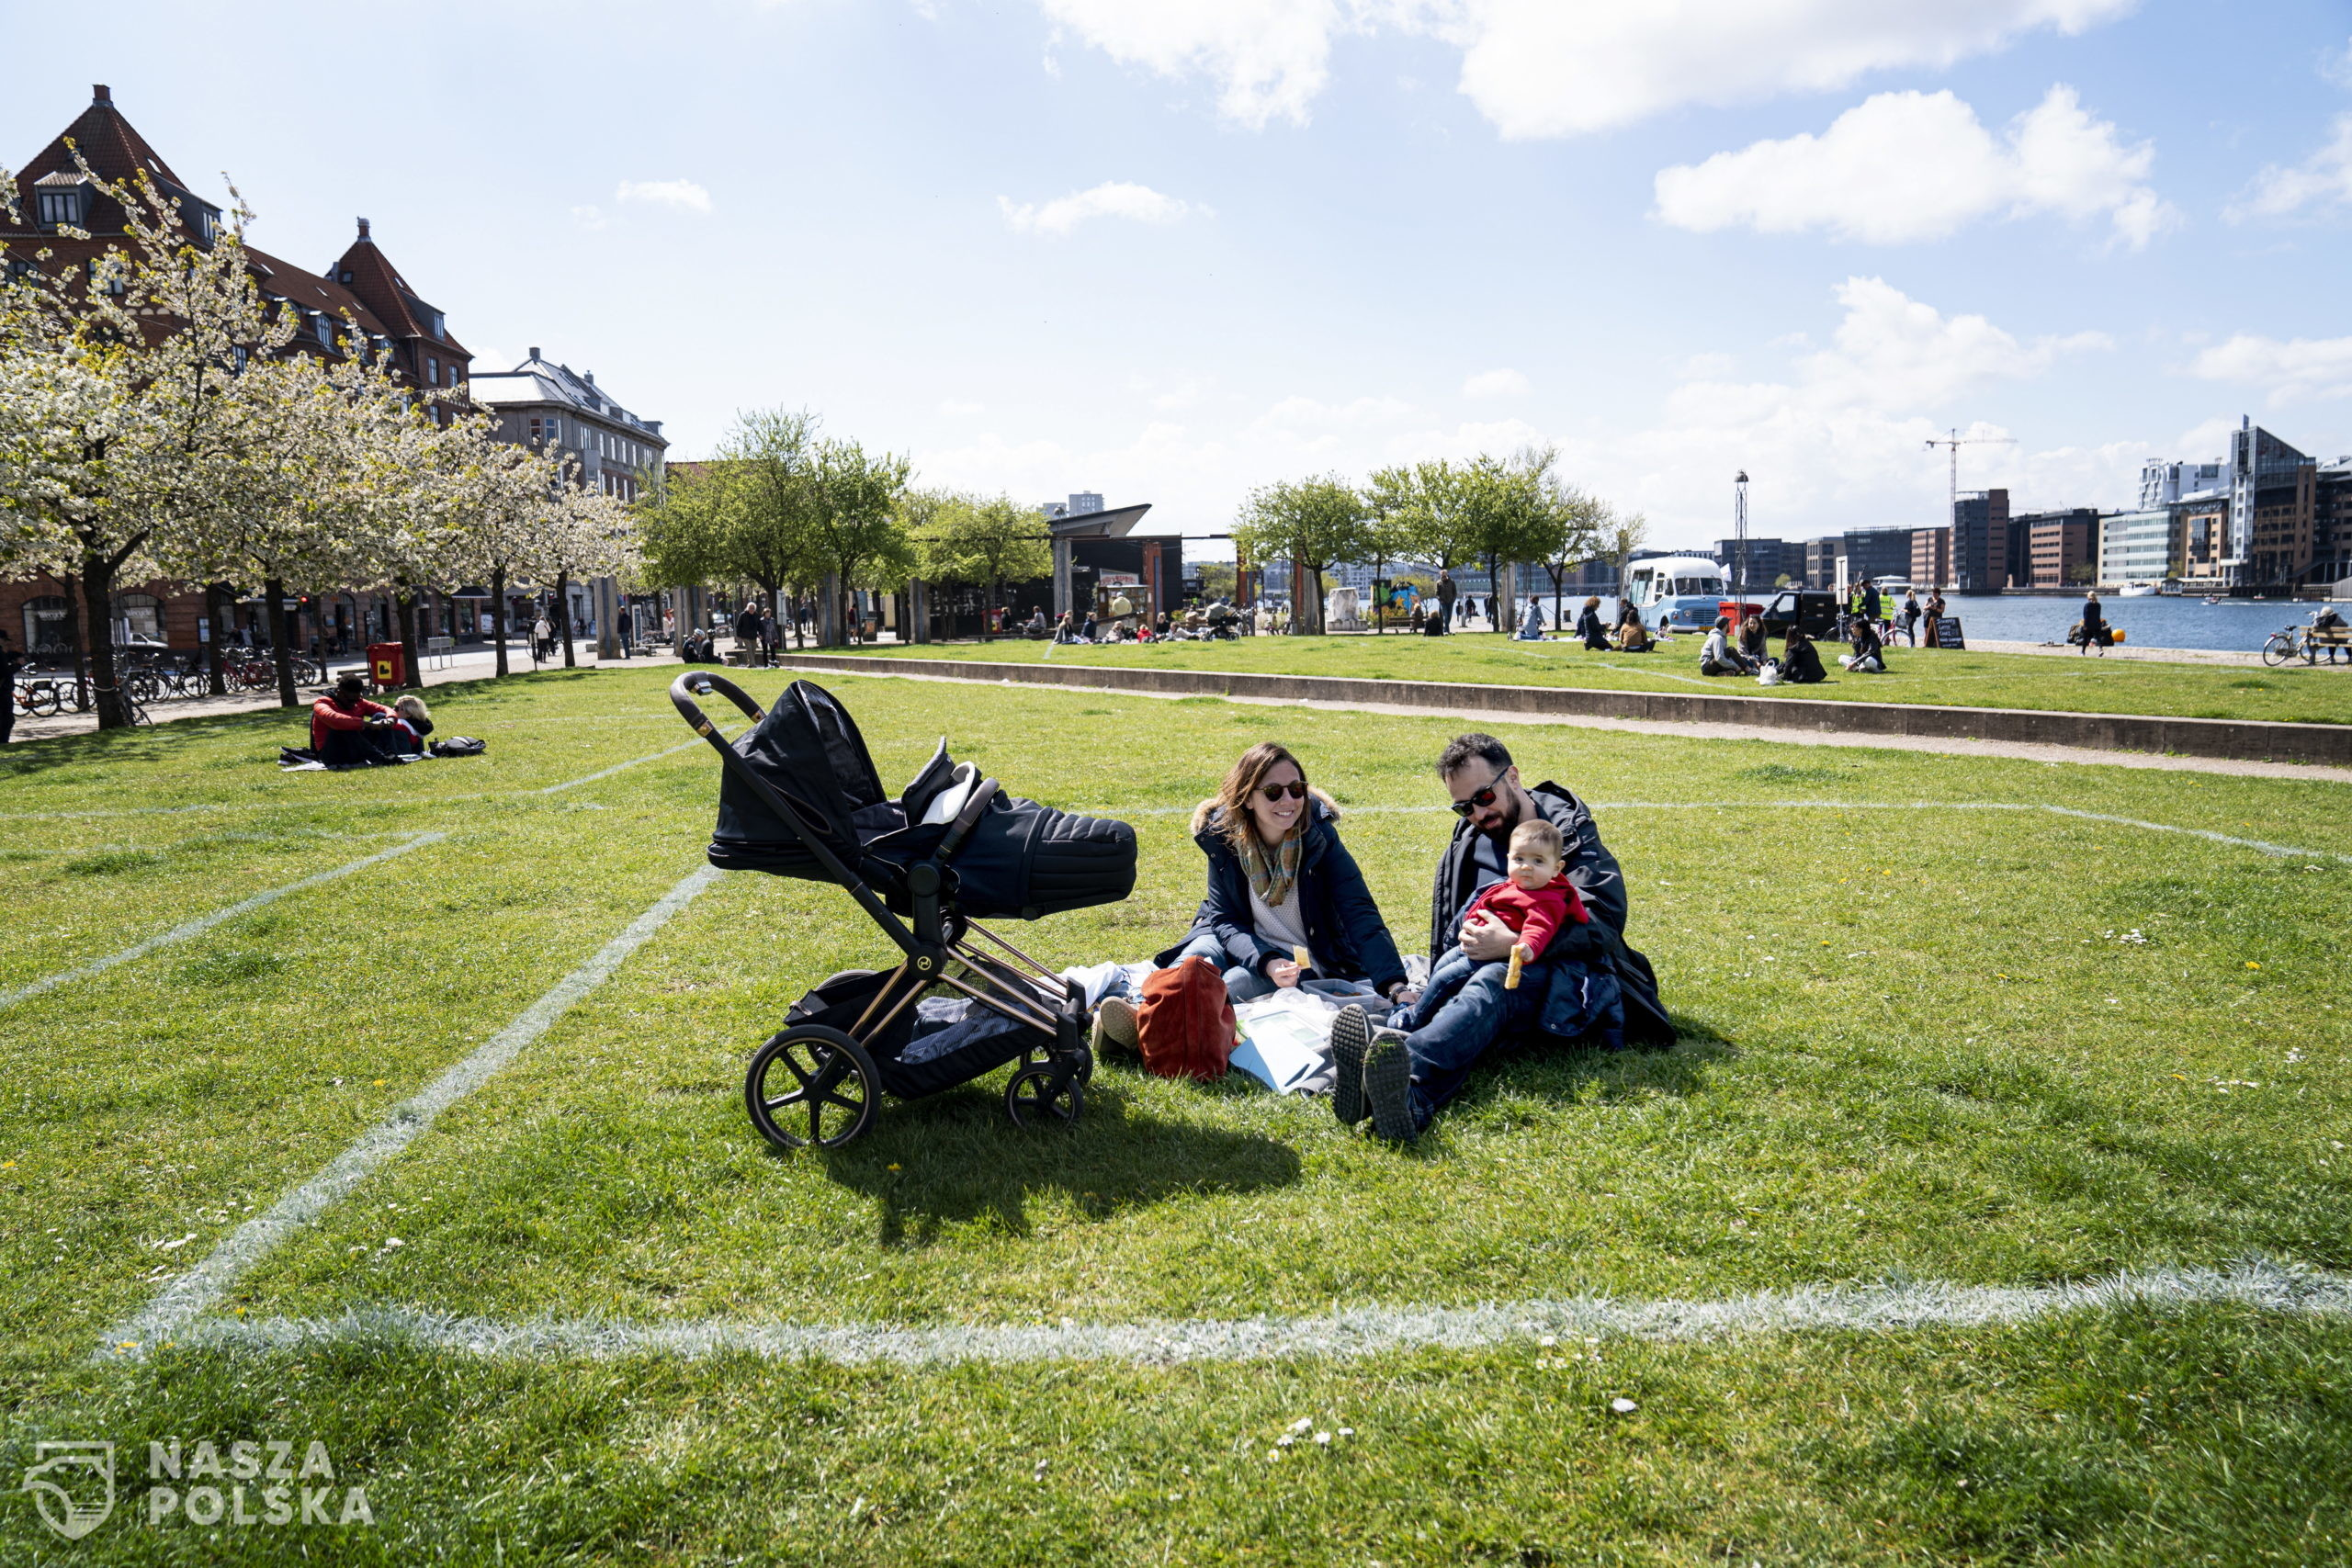 epa08398885 Marina and Andrea enjoy the sun with their daughter Sara at Islands Brygge in Copenhagen, Denmark, 03 May 2020. Marked areas of 40 m2 in which only 10 people can stay, will help citizens keep distance to prevent the spread of SARS-CoV-2 coronavirus which causes the Covid-19 disease. The green area is a favorite place of leisure activities for the residents of Islands Brygge.  EPA/IDA GULDBAEK ARENTSEN  DENMARK OUT  ** NOTE the picture taken with a telephoto lens and the distance between people in the picture can be perceived less than it really is. **  Dostawca: PAP/EPA.